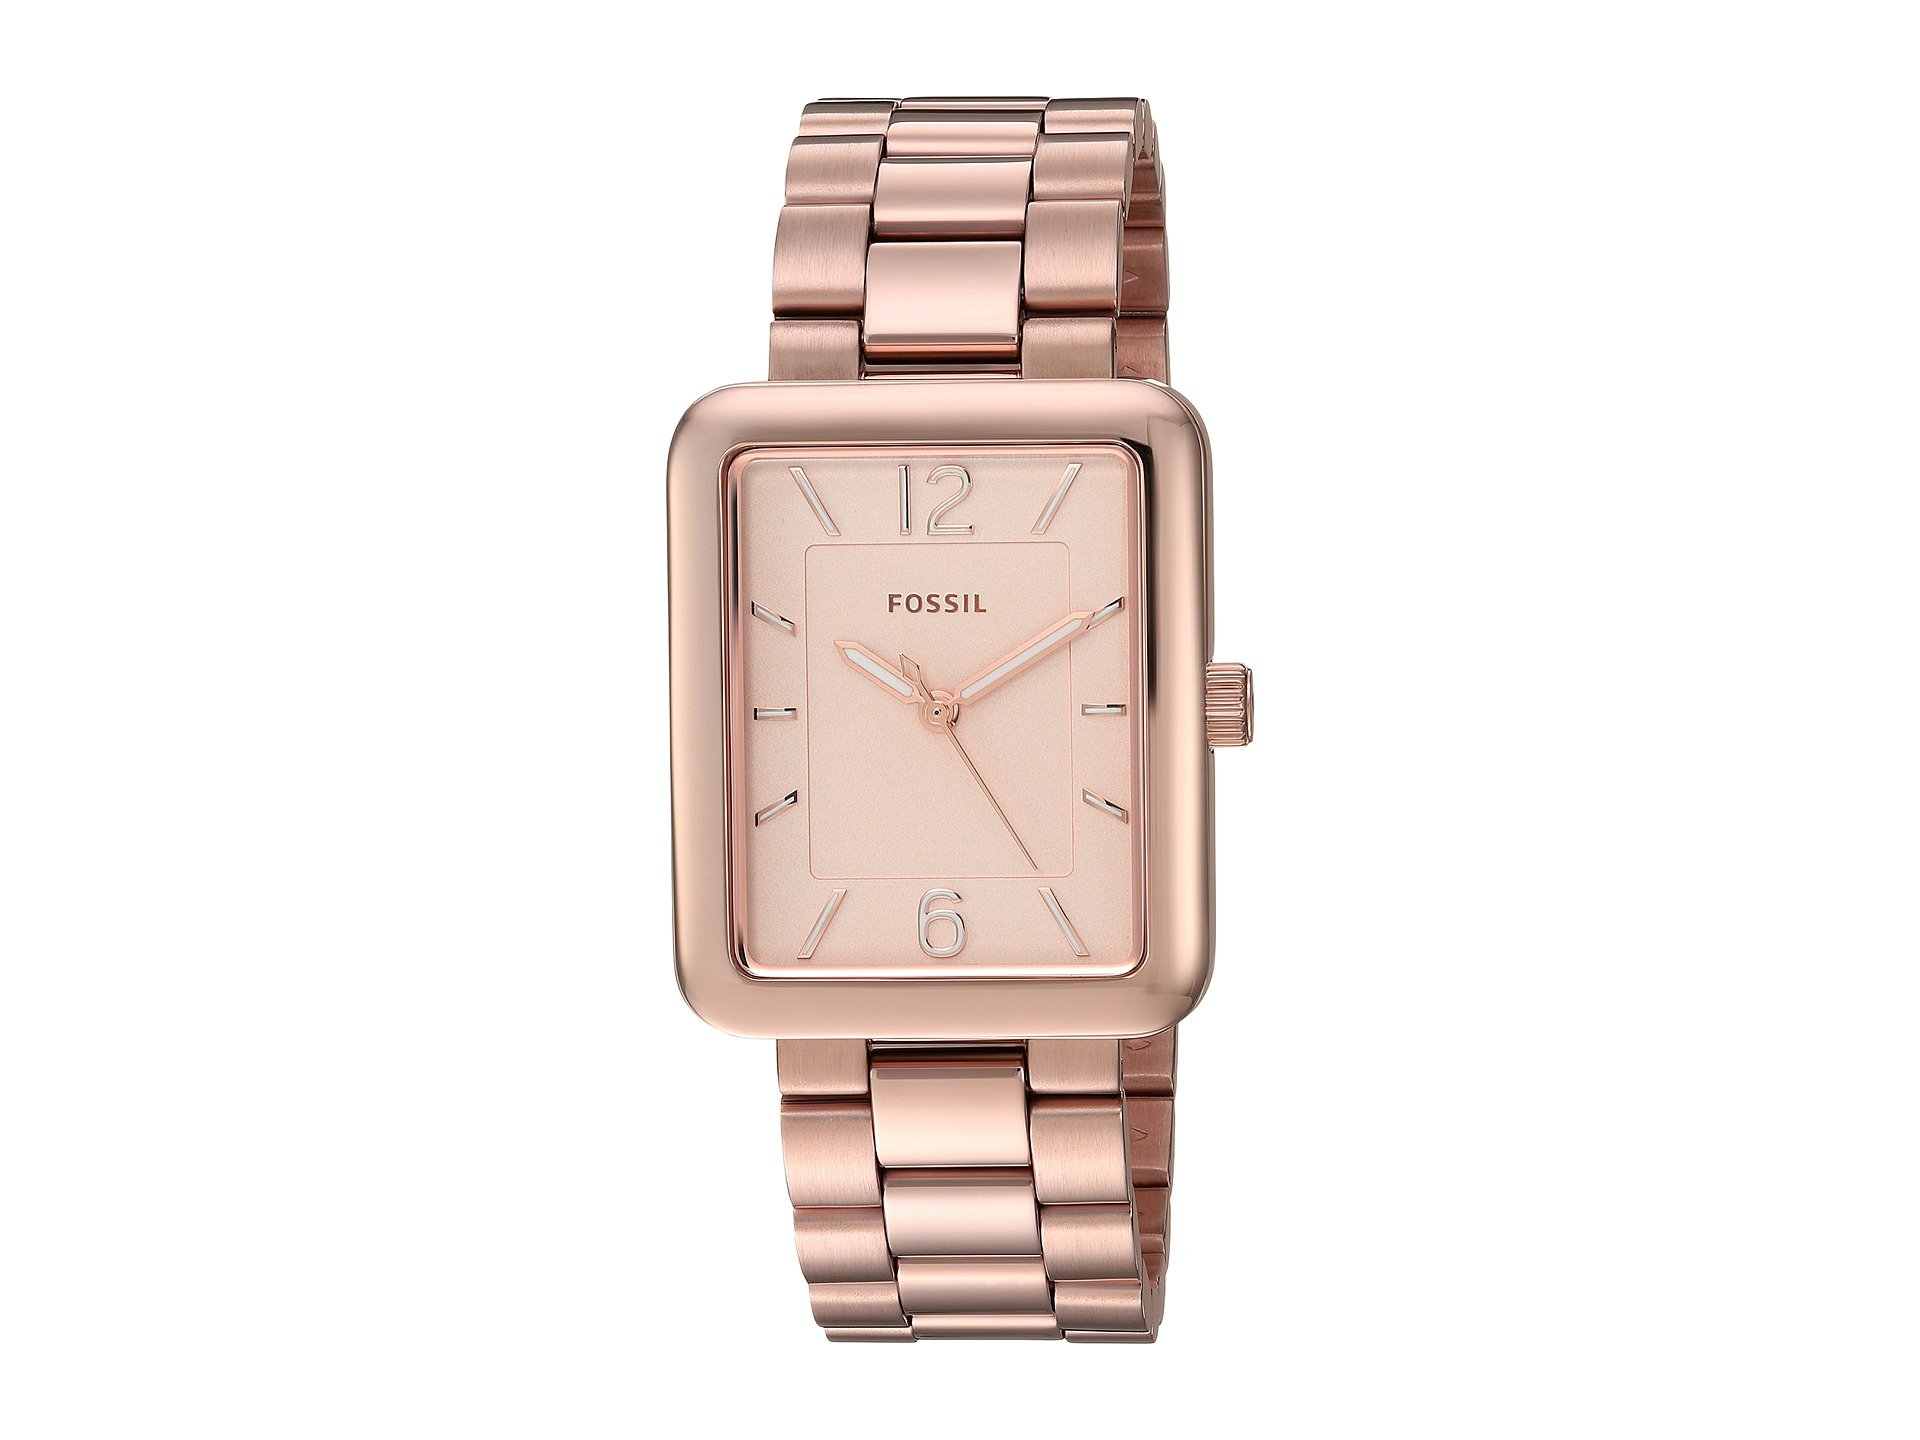 Reloj para Mujer Fossil Atwater - ES4156  + Fossil en VeoyCompro.net